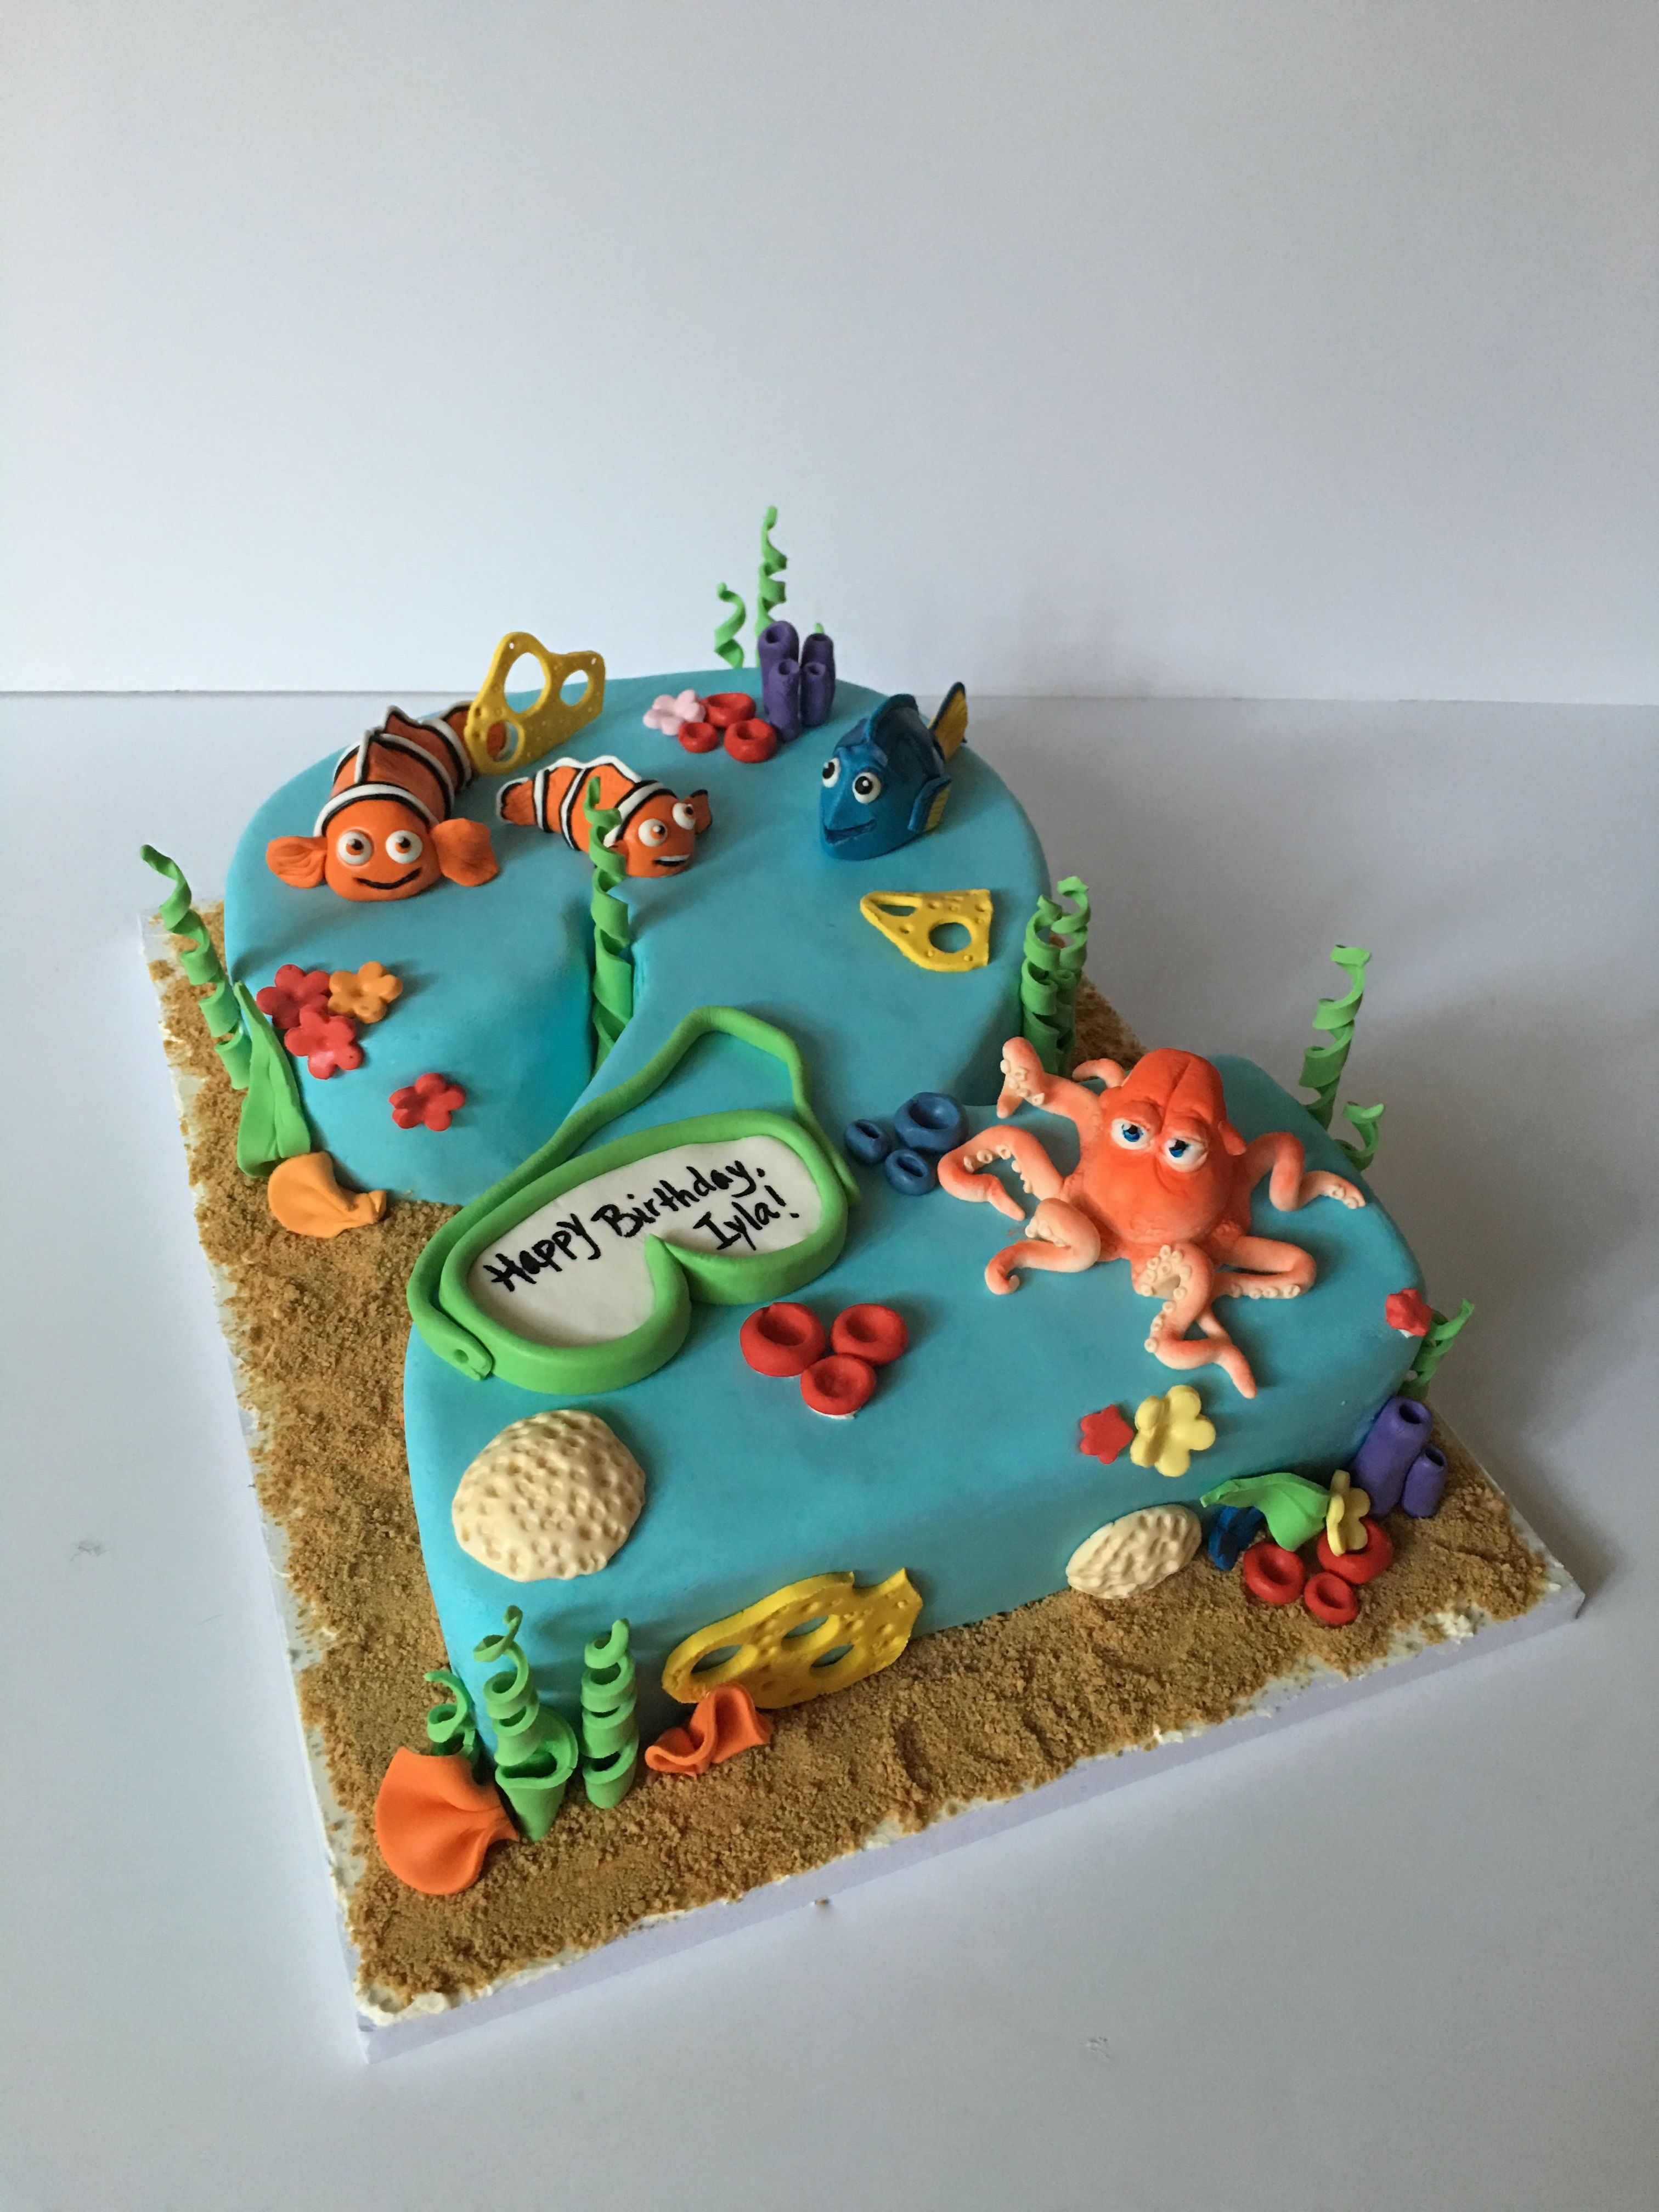 Finding Nemo Finding Dory Combo Cake For A 2 Year Old Birthday